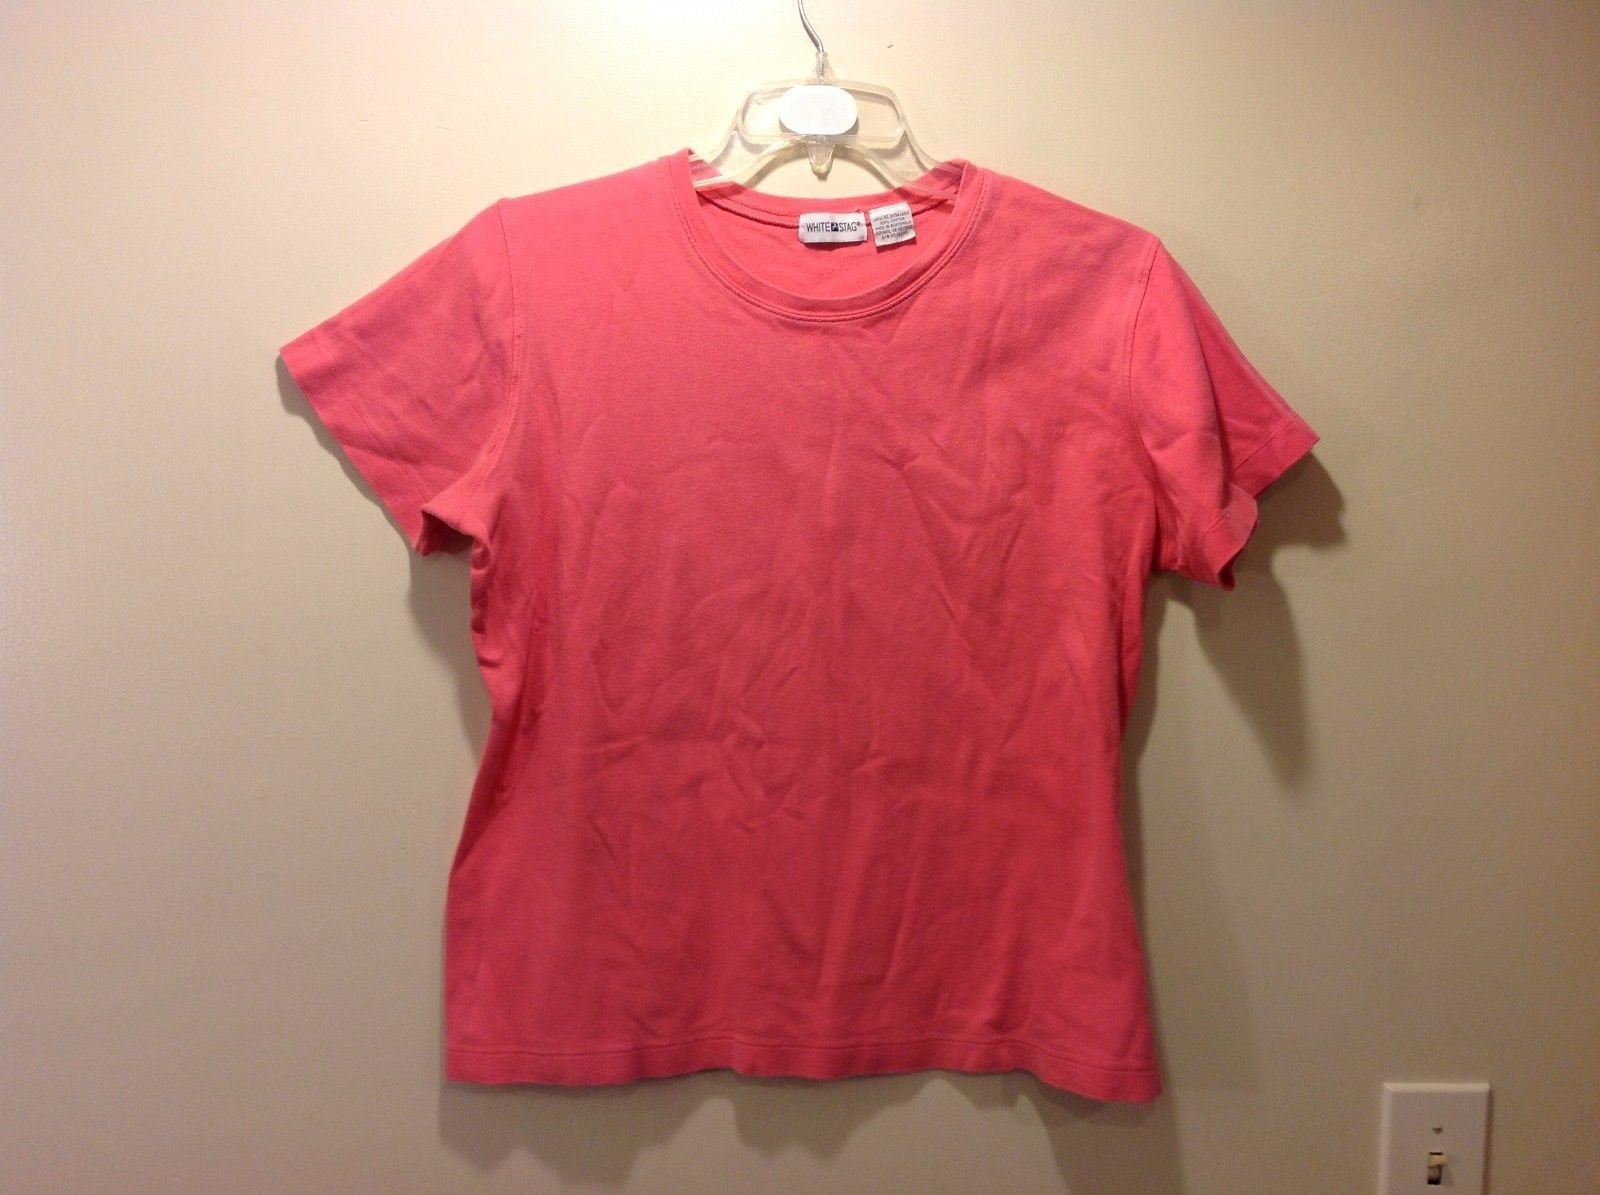 Ladies White Stag Simple Pink Short Sleeve Shirt Sz XL